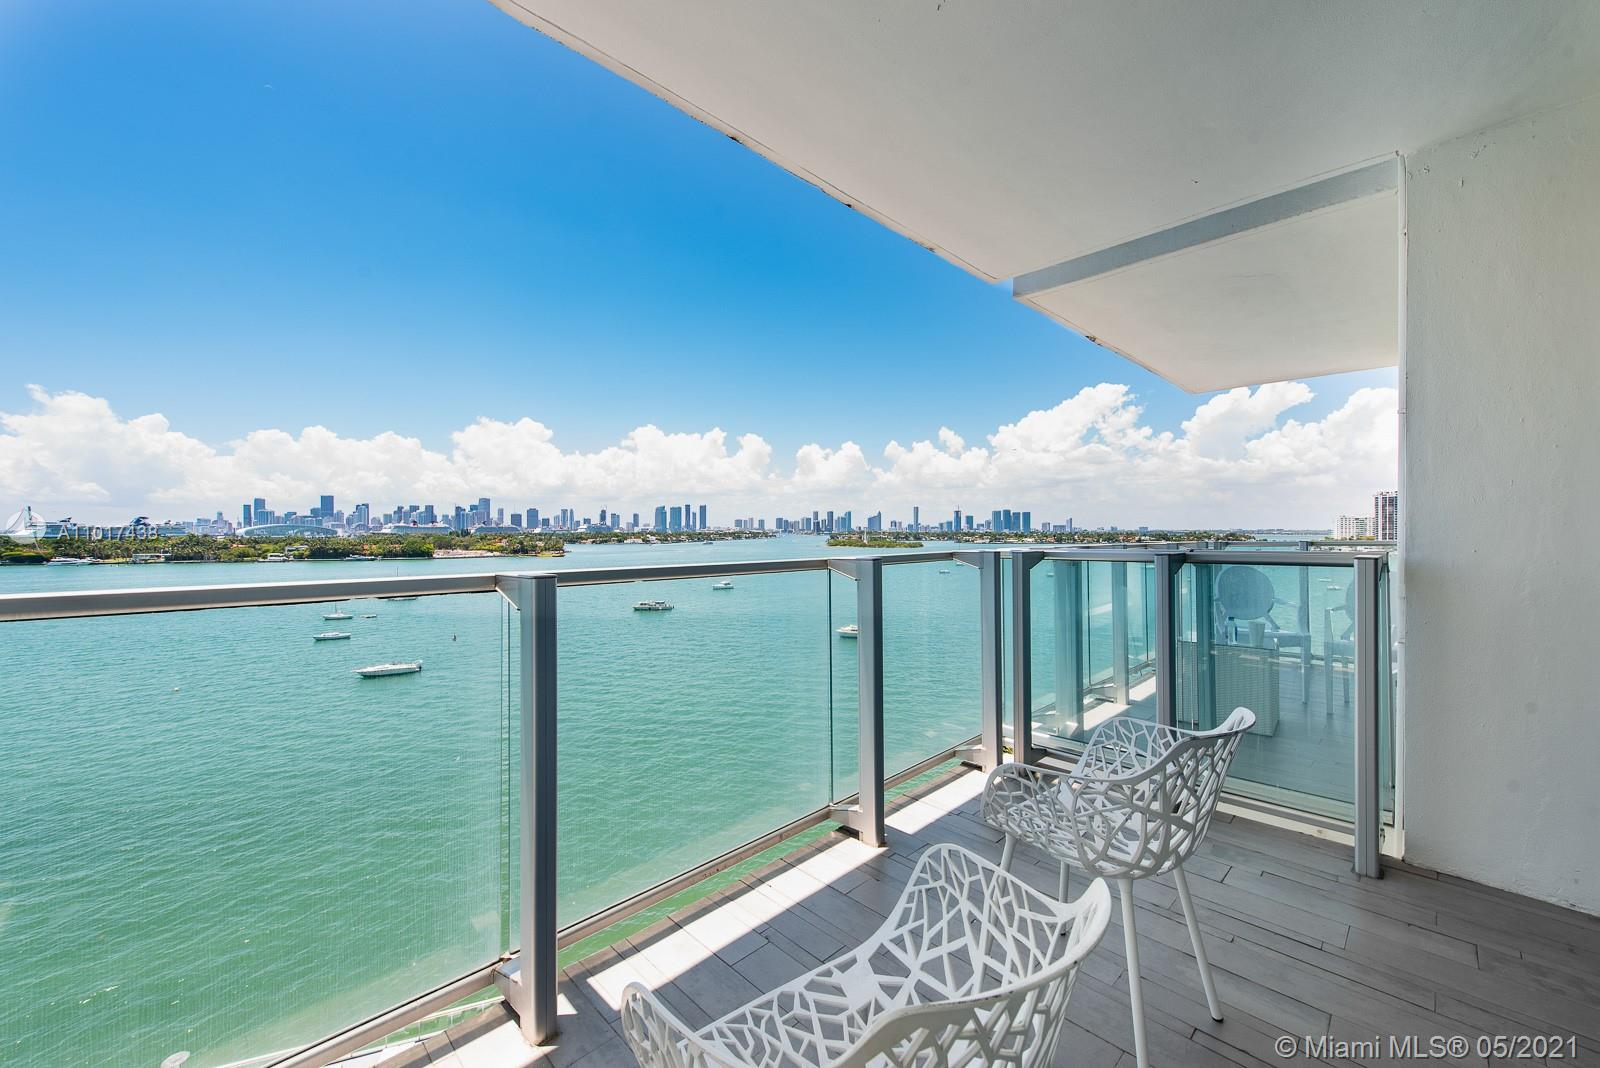 Be a part of the quintessential super high end South Beach experience. Enjoy the immediate pool scene from your private balcony. With phenomenal bay/sunset views from this 9th floor 1 bedroom! All of the privileges of the exclusive Mondrian South Beach hotel. Unit is fully furnished and designed by Marcel Wanders. Live life on waterfront West Avenue one block from Starbucks & Whole Foods Market as well as a short distance to Lincoln Road. Hotel went through major renovations in 2020.